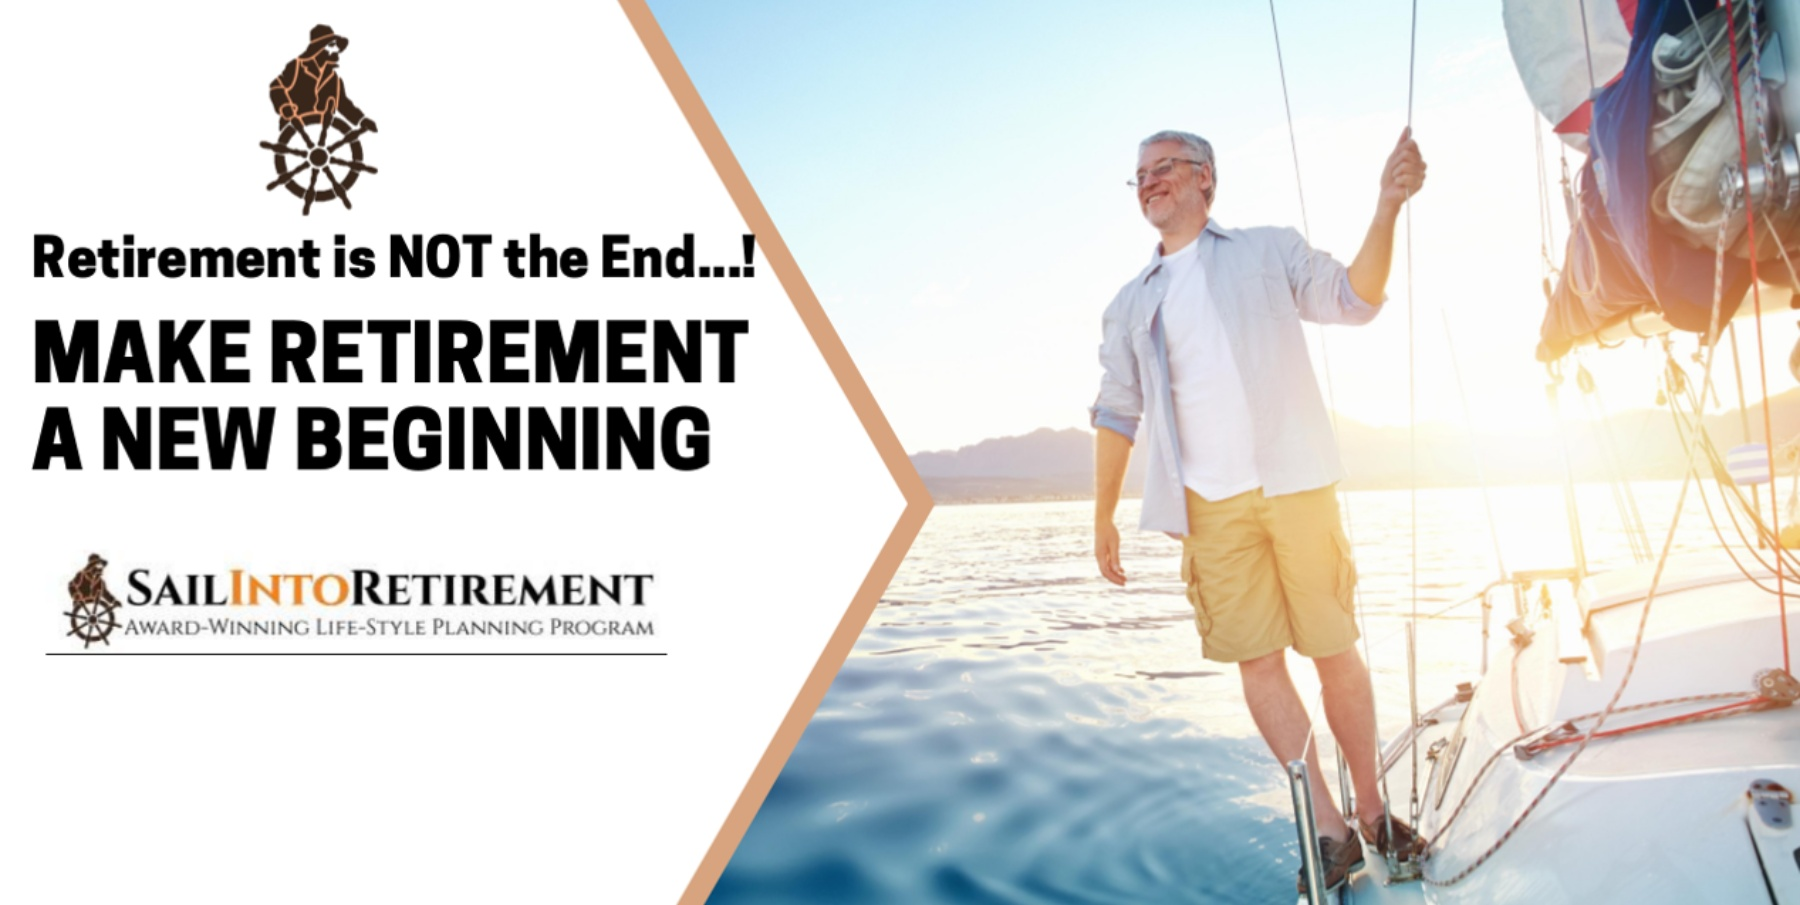 Larry Jacobson - Amazon Best-Selling Author - Sail Into Retirement